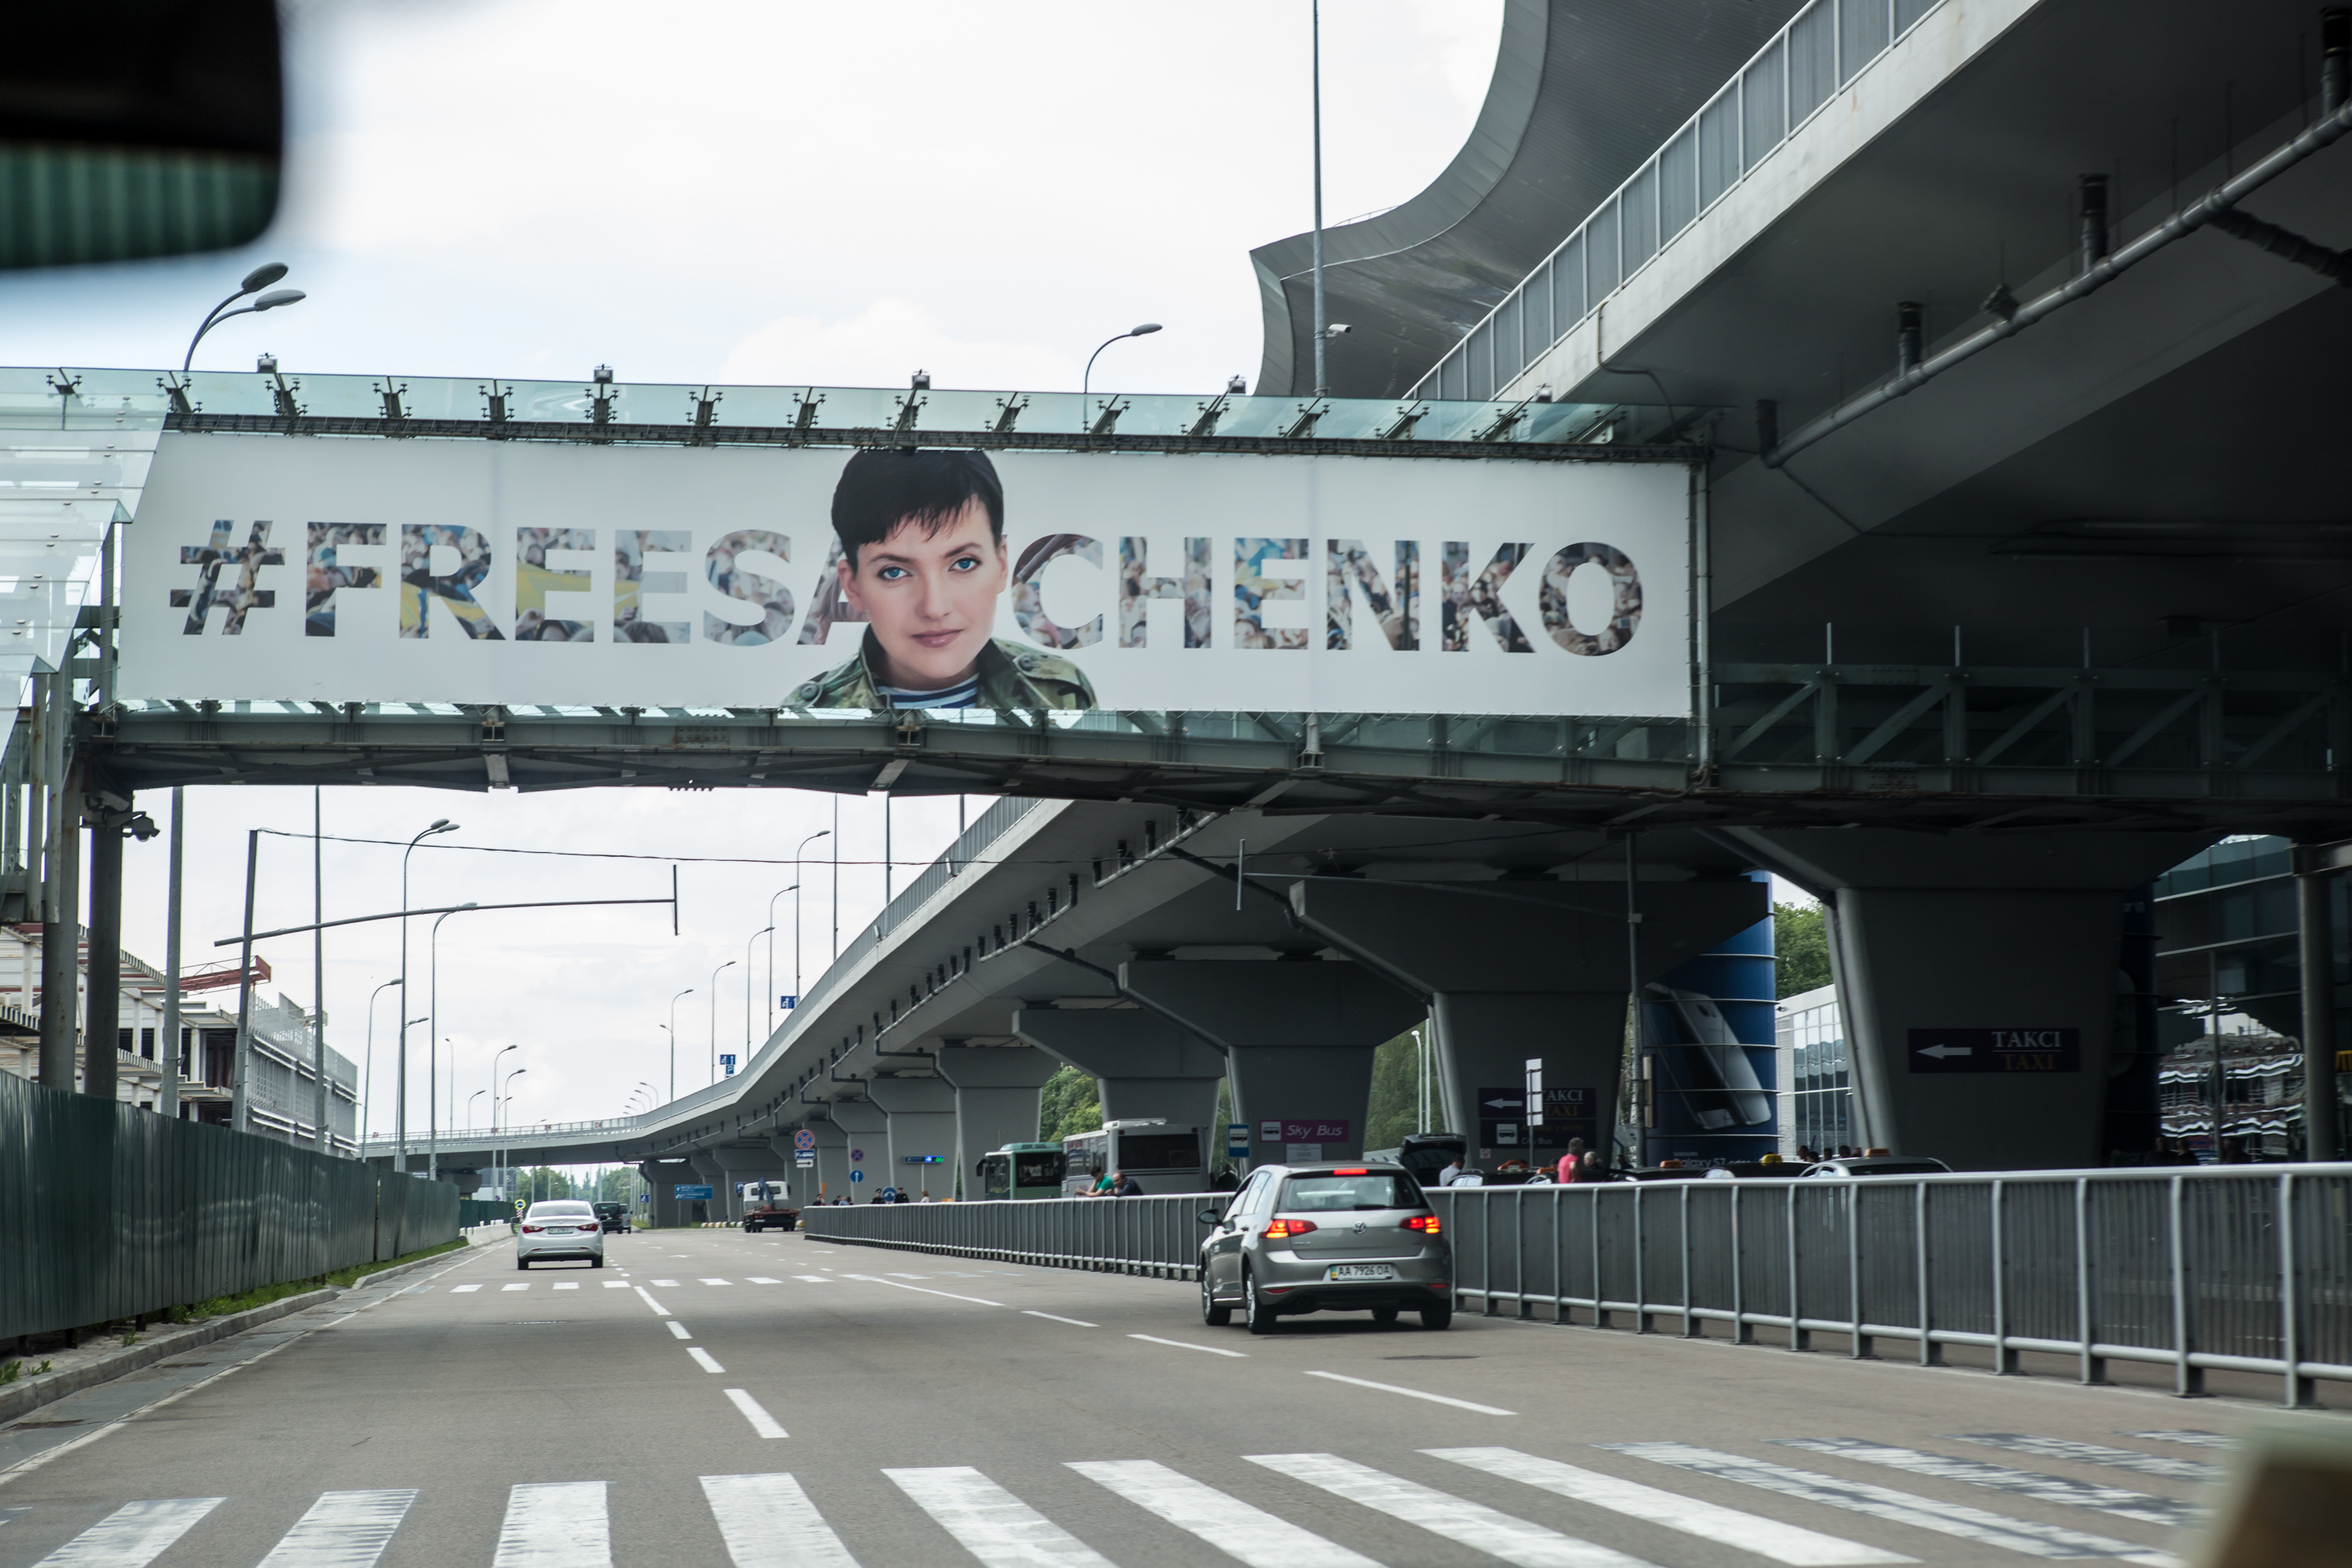 A sign advocating the release of Ukrainian military pilot Nadiya Savchenko hangs at Kyiv Boryspil Airport, where she landed after being released from Russian custody on May 25, 2016 in Boryspil, Ukraine. Savchenko was captured while fighting Russia-backed rebels in eastern Ukraine and put on trial in Russia on charges she was complicit in the deaths of two Russian journalists. In March she was convicted and sentenced to 22 years in prison, but was reportedly swapped for two Russian fighters captured by Ukrainian forces.